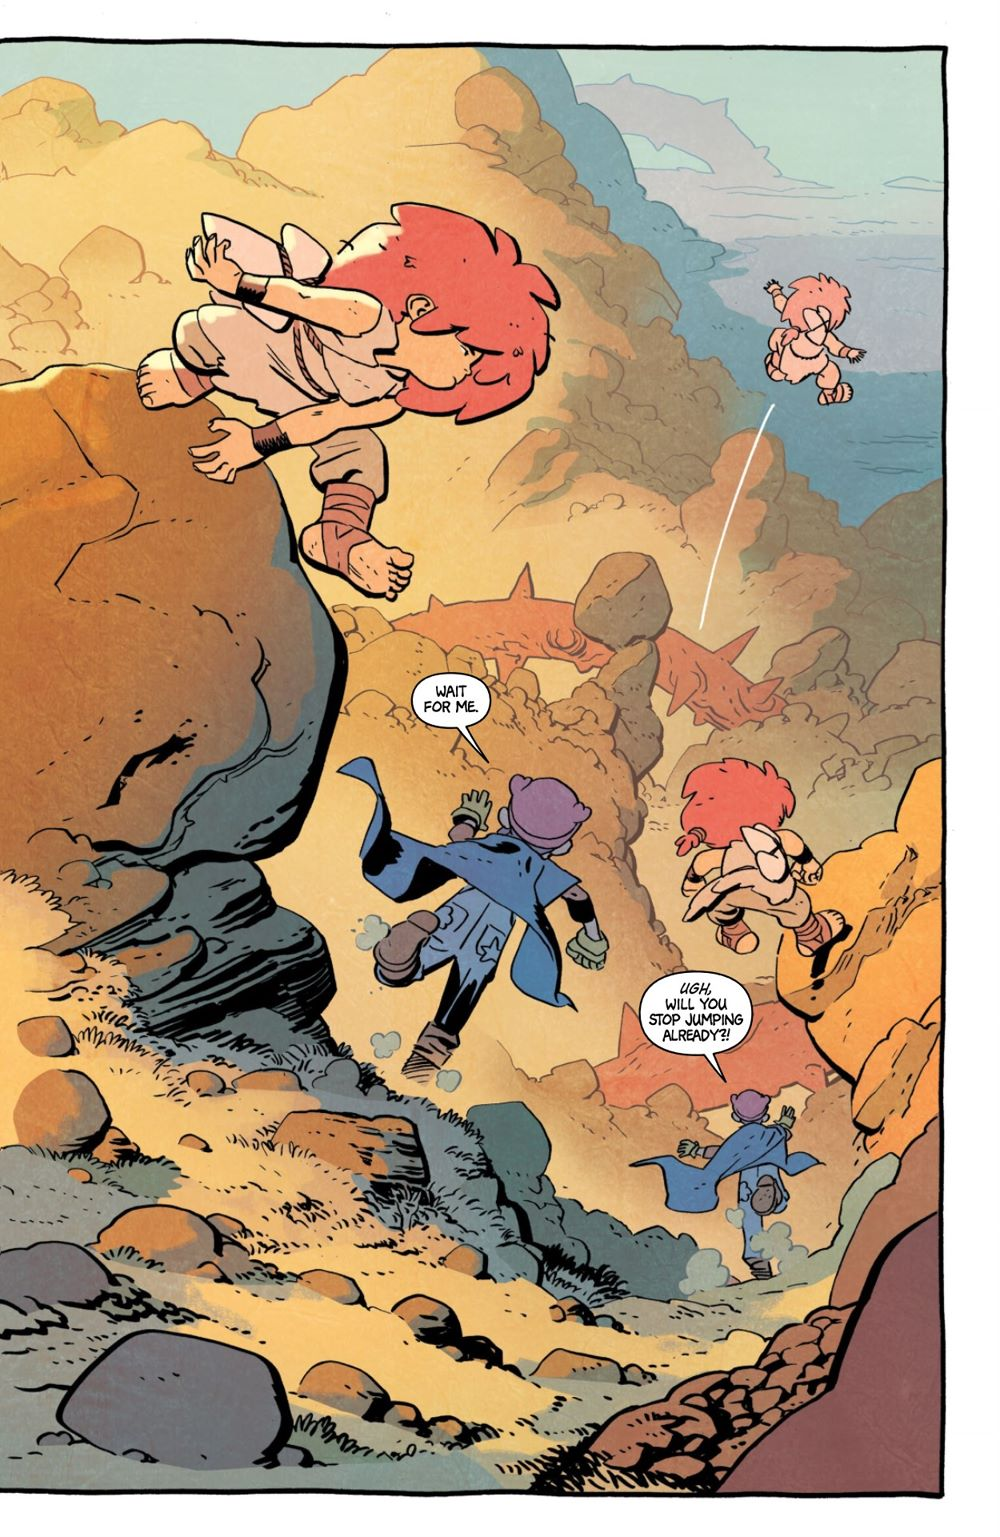 JONNA-3-REFERENCE-08 ComicList Previews: JONNA AND THE UNPOSSIBLE MONSTERS #3